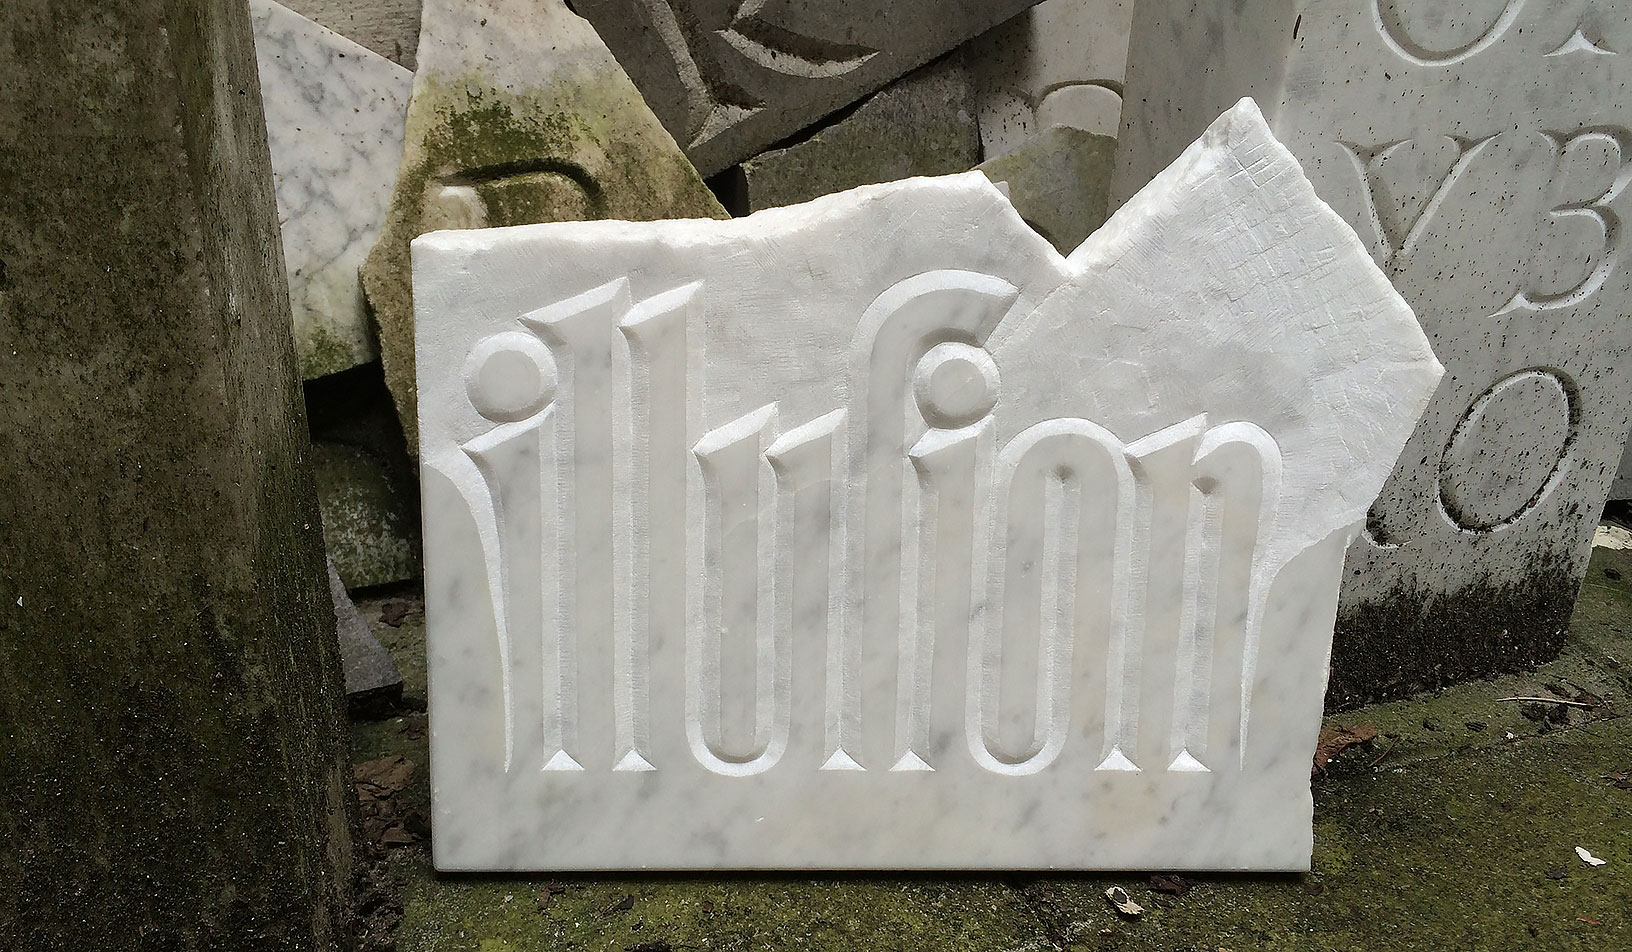 My final stonecarving piece for TypeMedia 1314